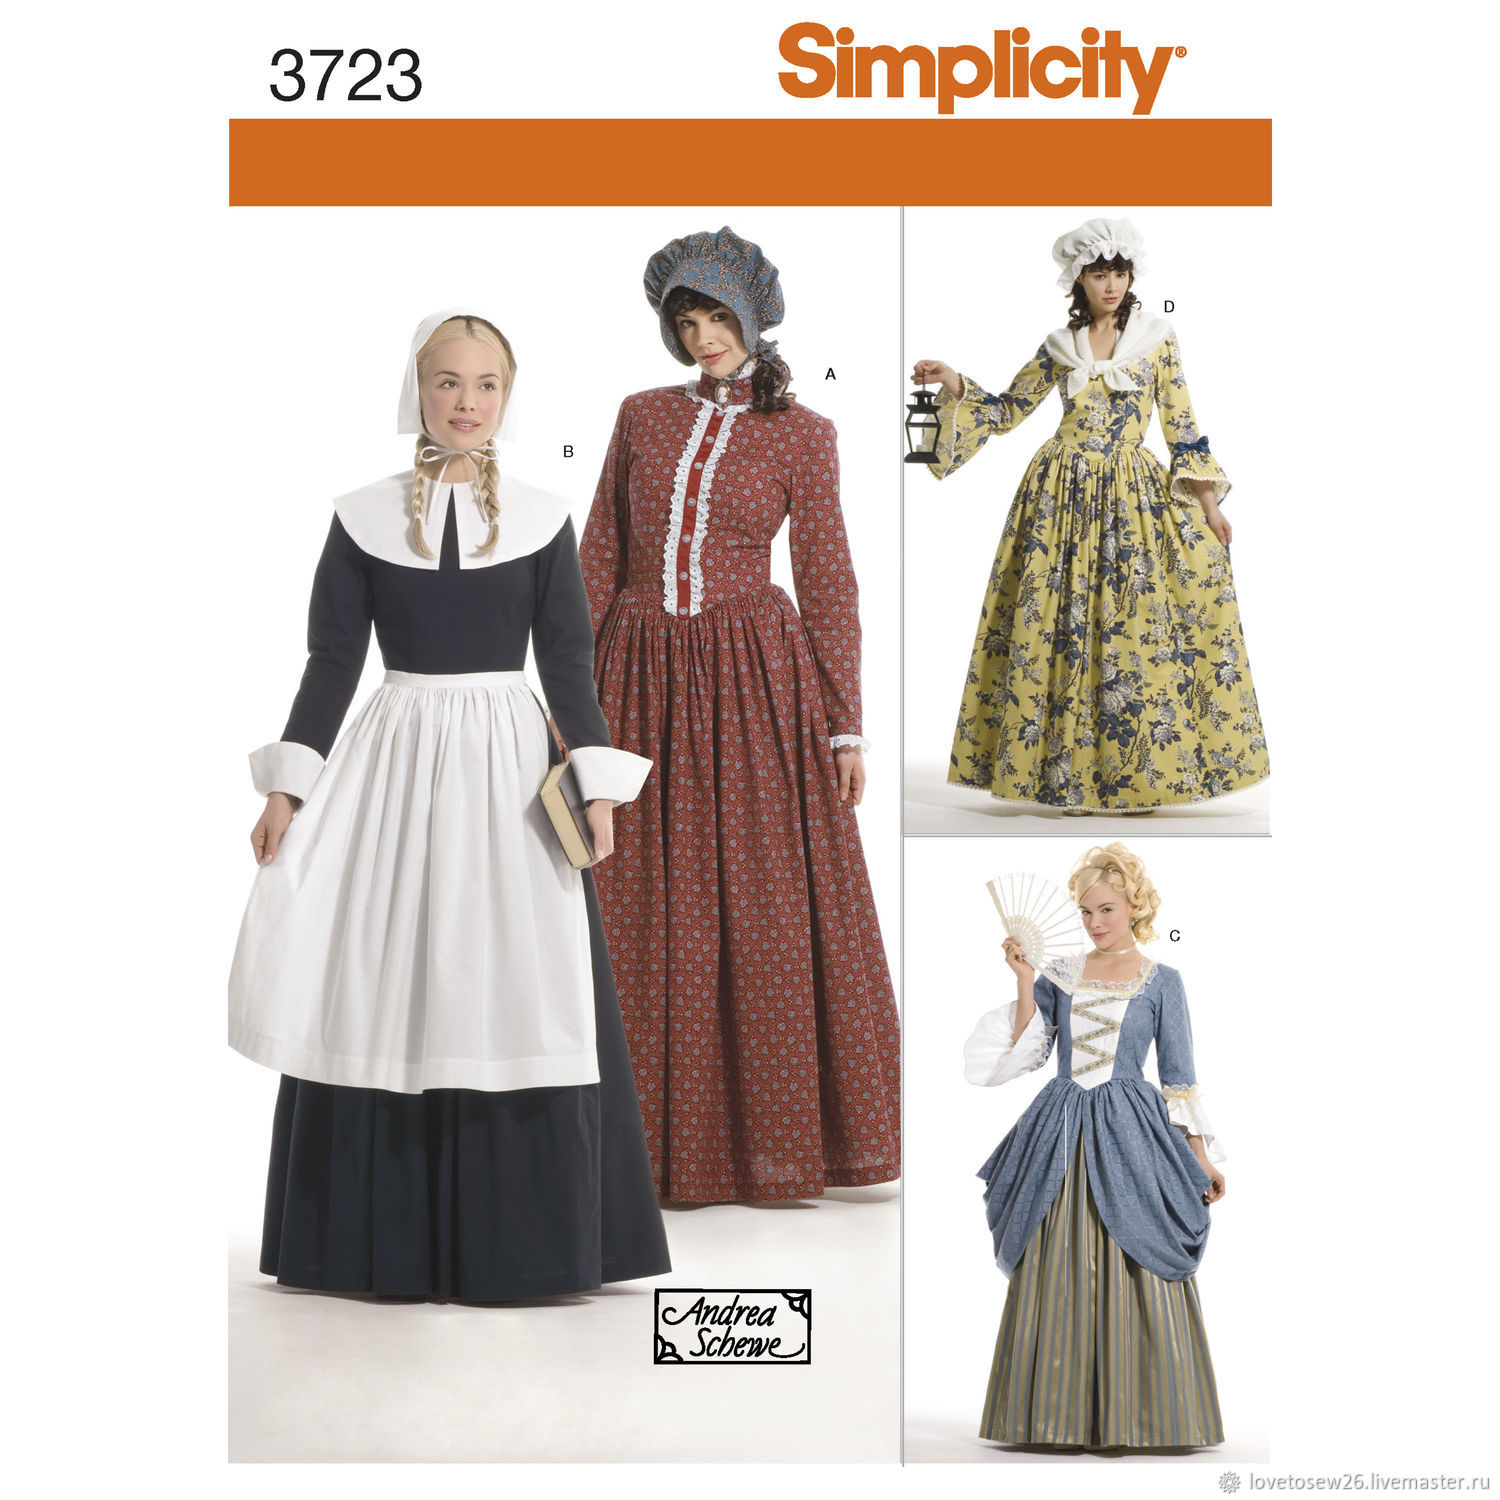 SEWING PATTERN Historic Costumes Early America French Revolution S3723, Sewing patterns, St. Petersburg,  Фото №1